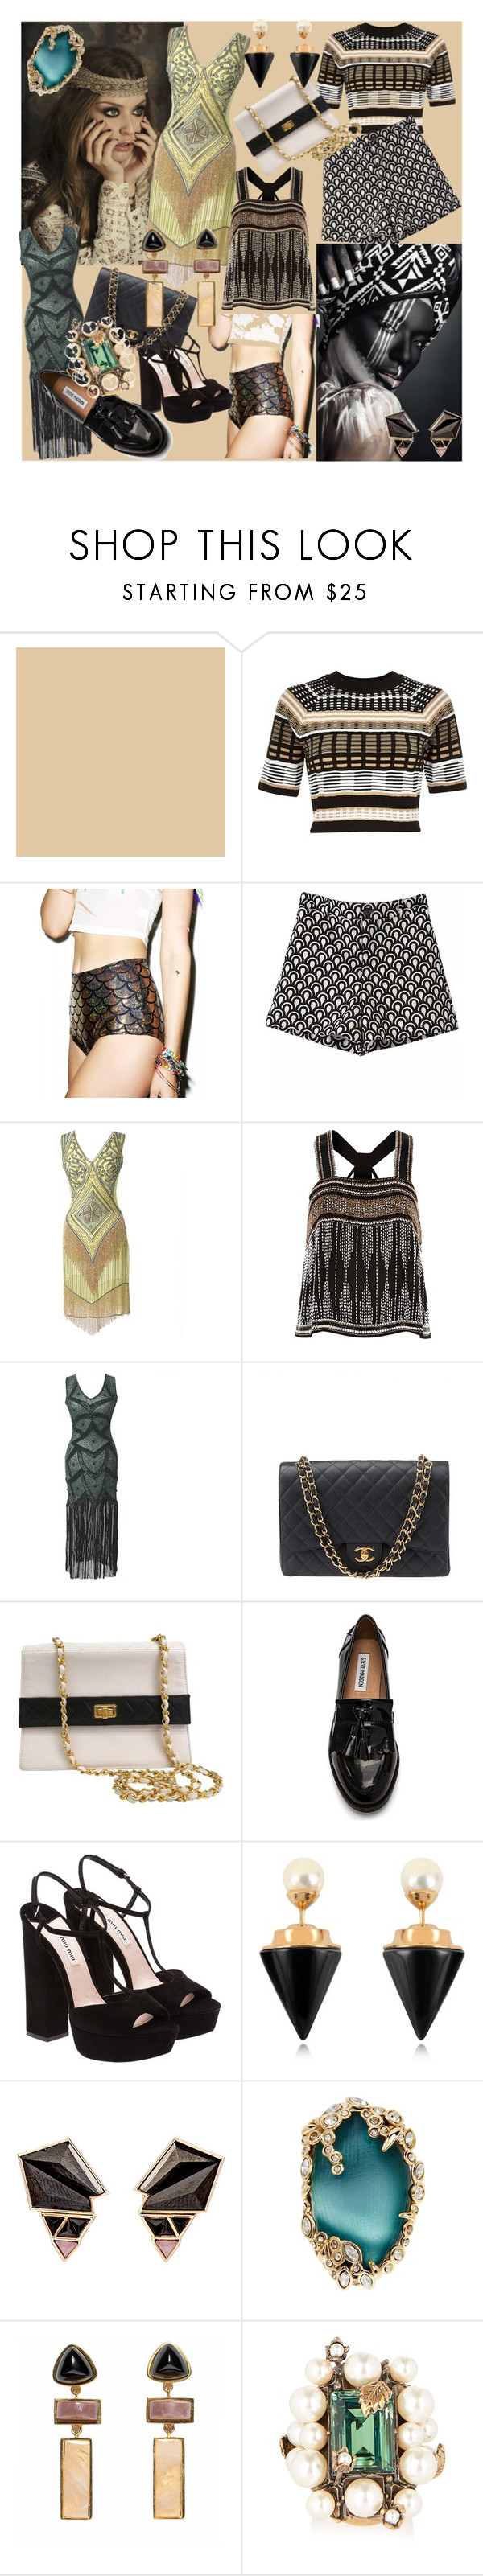 Art Deco by magyar-fruzsina on Polyvore featuring Iconic by UV, River Island, J. Valentine, Steve Madden, Miu Miu, Chanel, Lizzie Fortunato, Gucci, Alexis Bittar and Vita Fede